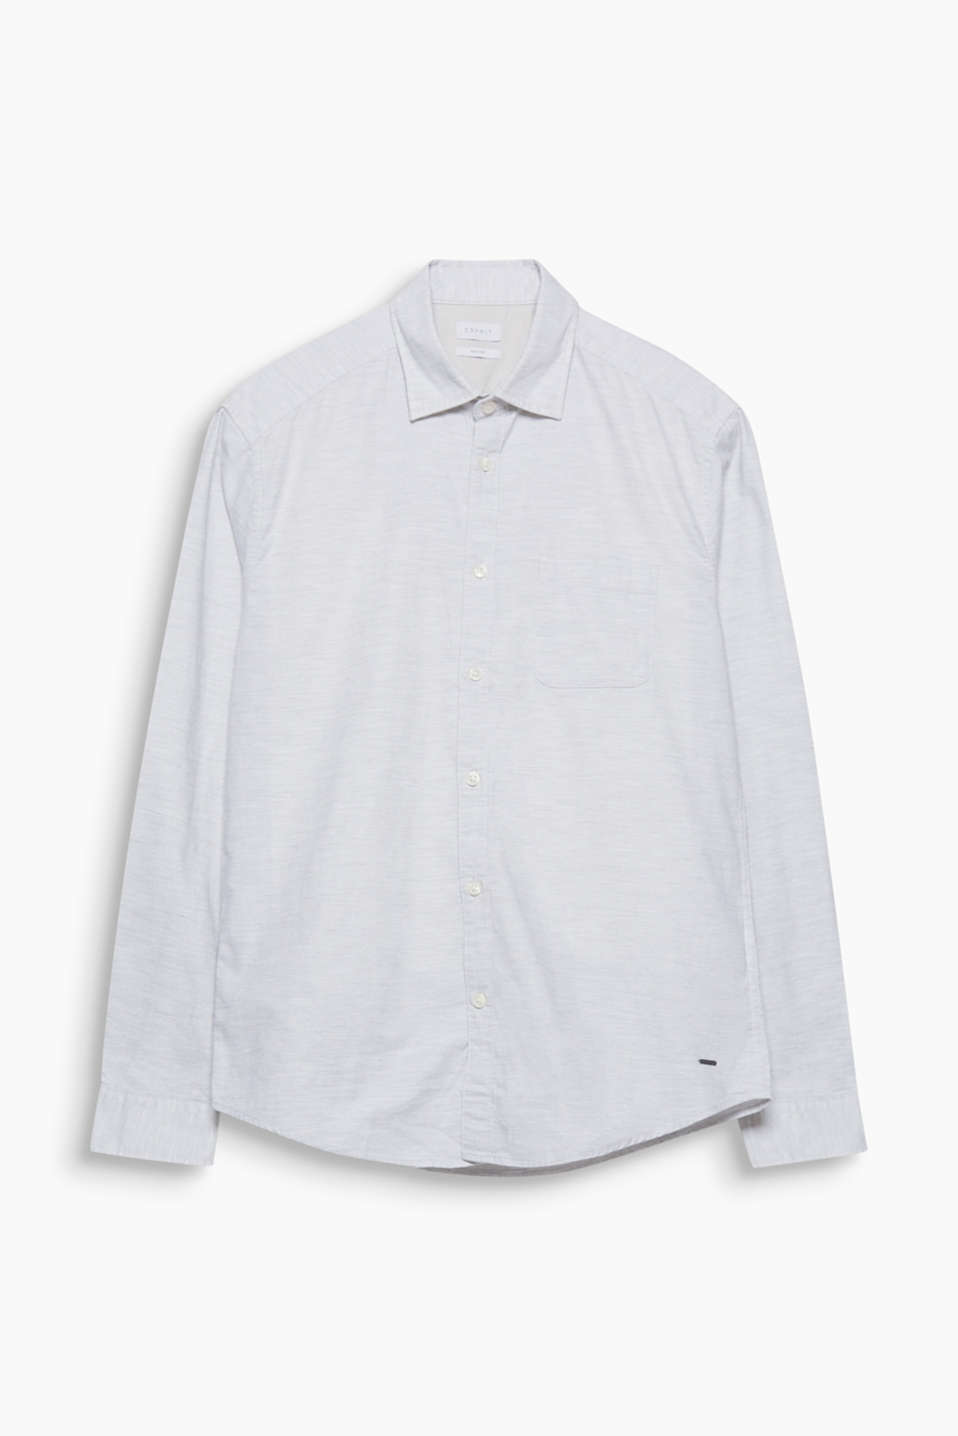 The striking cotton fabric with a slub texture gives this shirt a casual appeal.